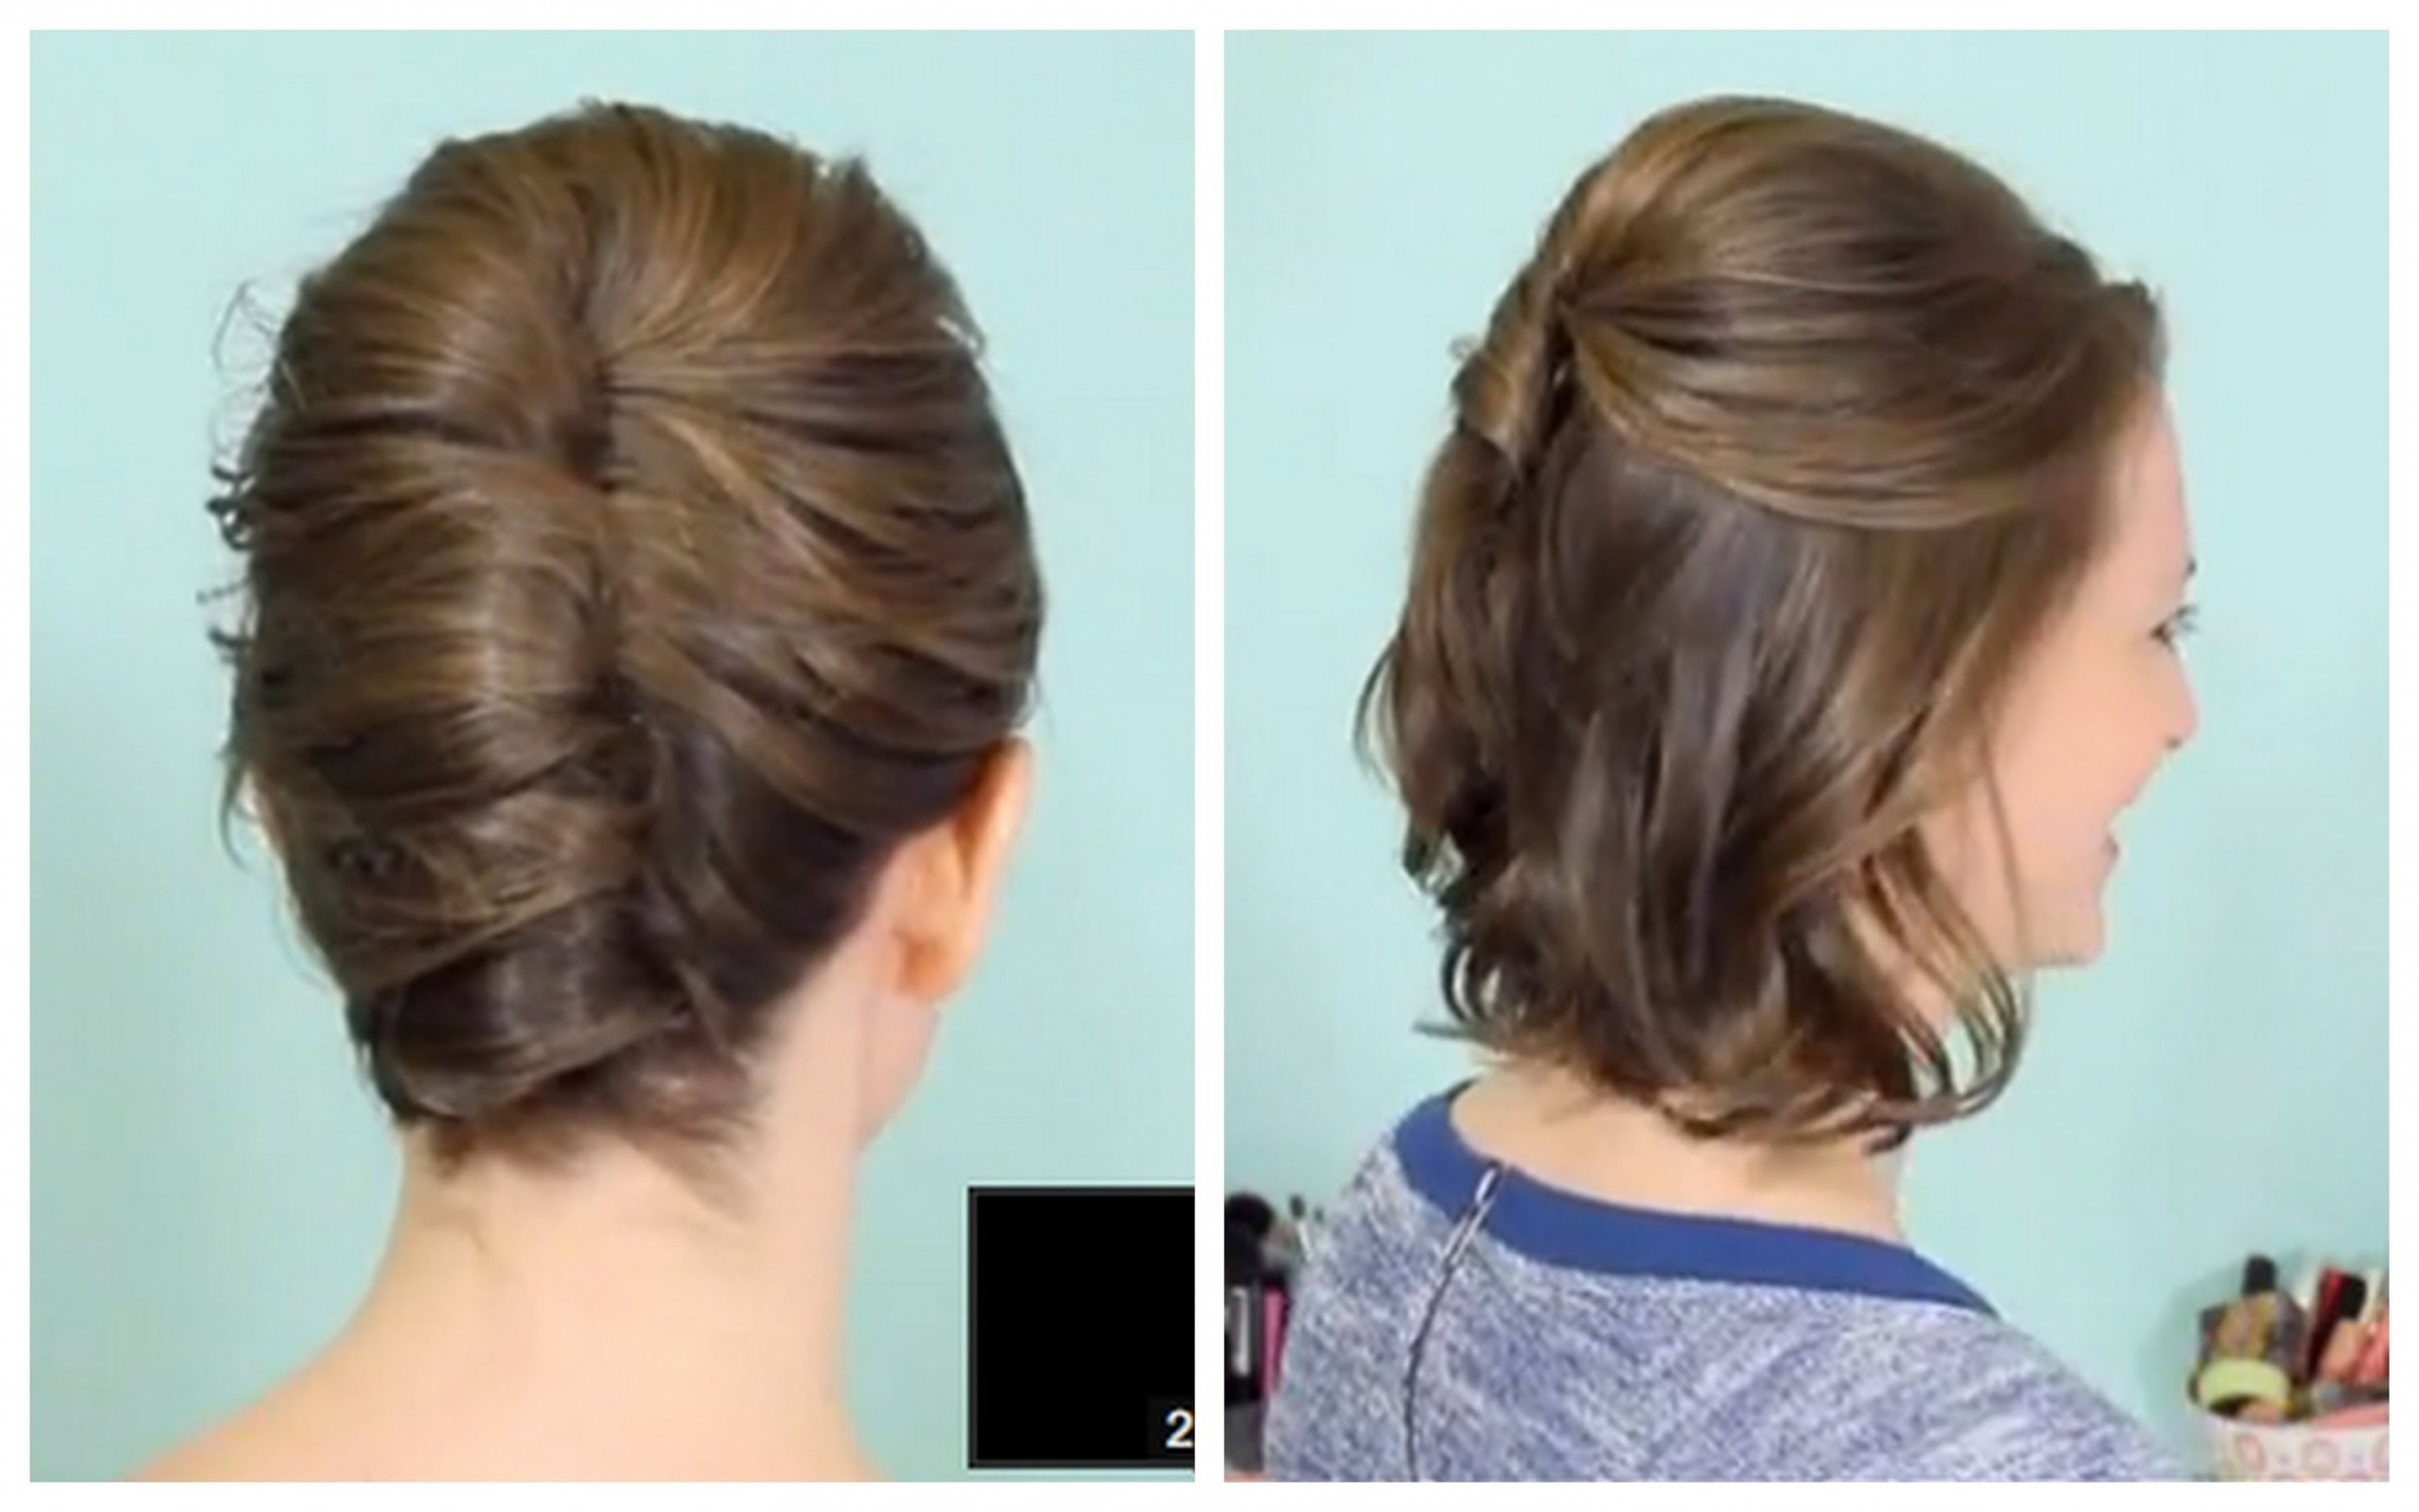 Updo Short Hairstyles French Twist Half Updo For Short Hair | Latest Inside French Twist Updo Hairstyles For Short Hair (Gallery 6 of 15)